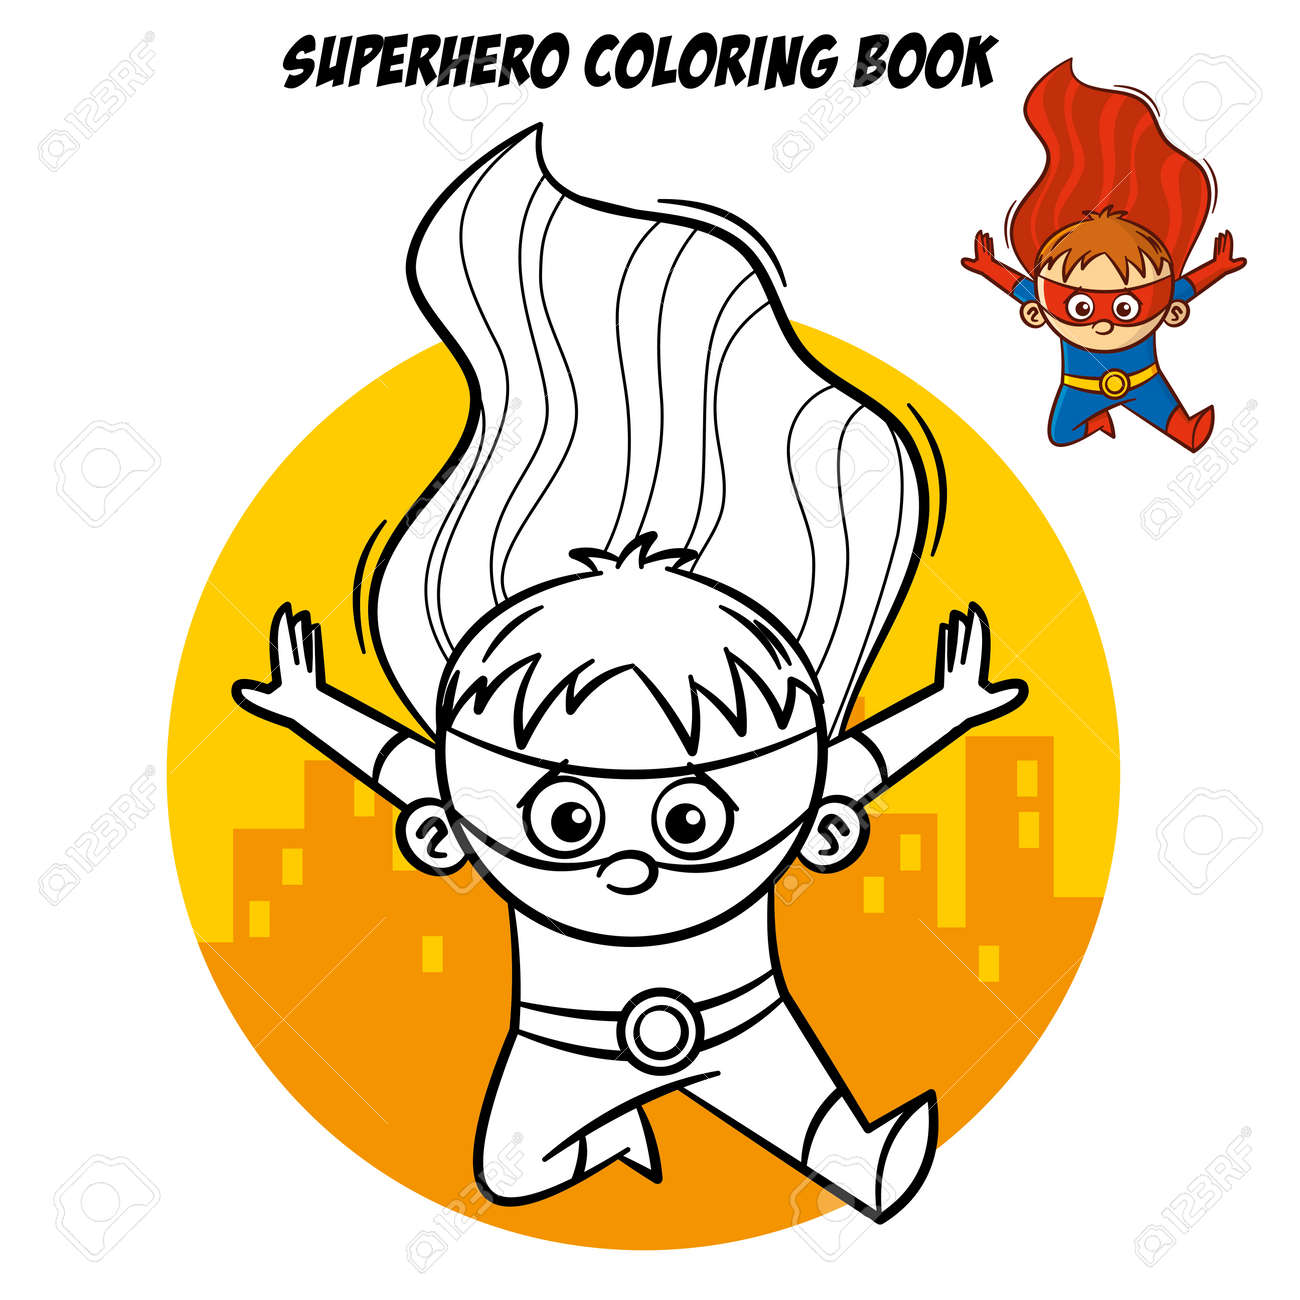 Superhero Coloring Book Comic Character Isolated On White Background Vector Illustration Stock